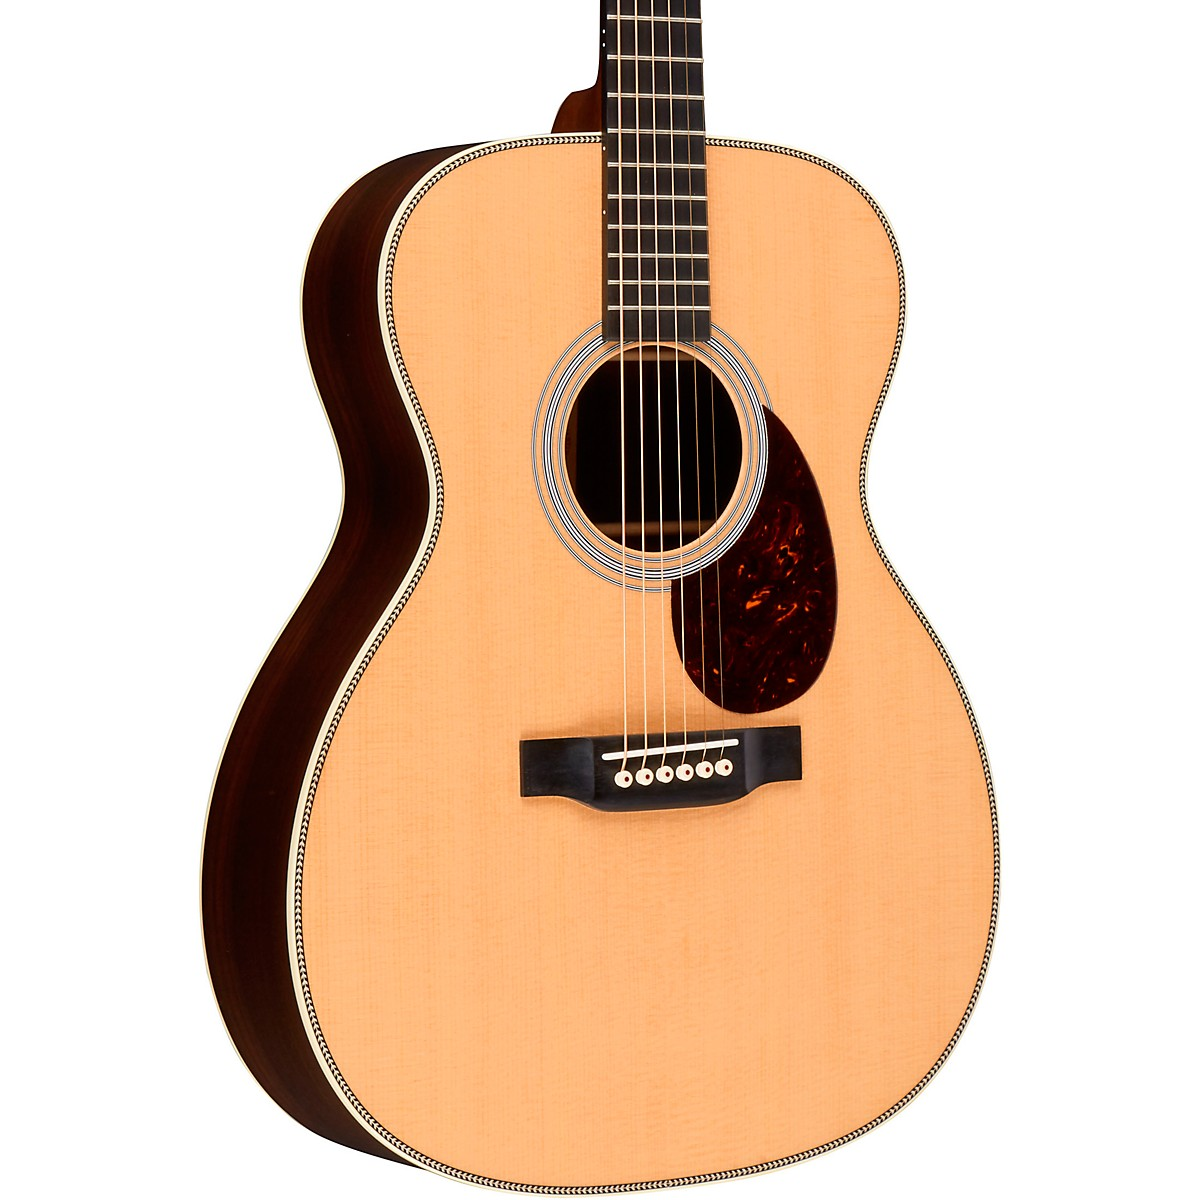 Martin Special 28 Style Orchestra Model VTS Acoustic Guitar